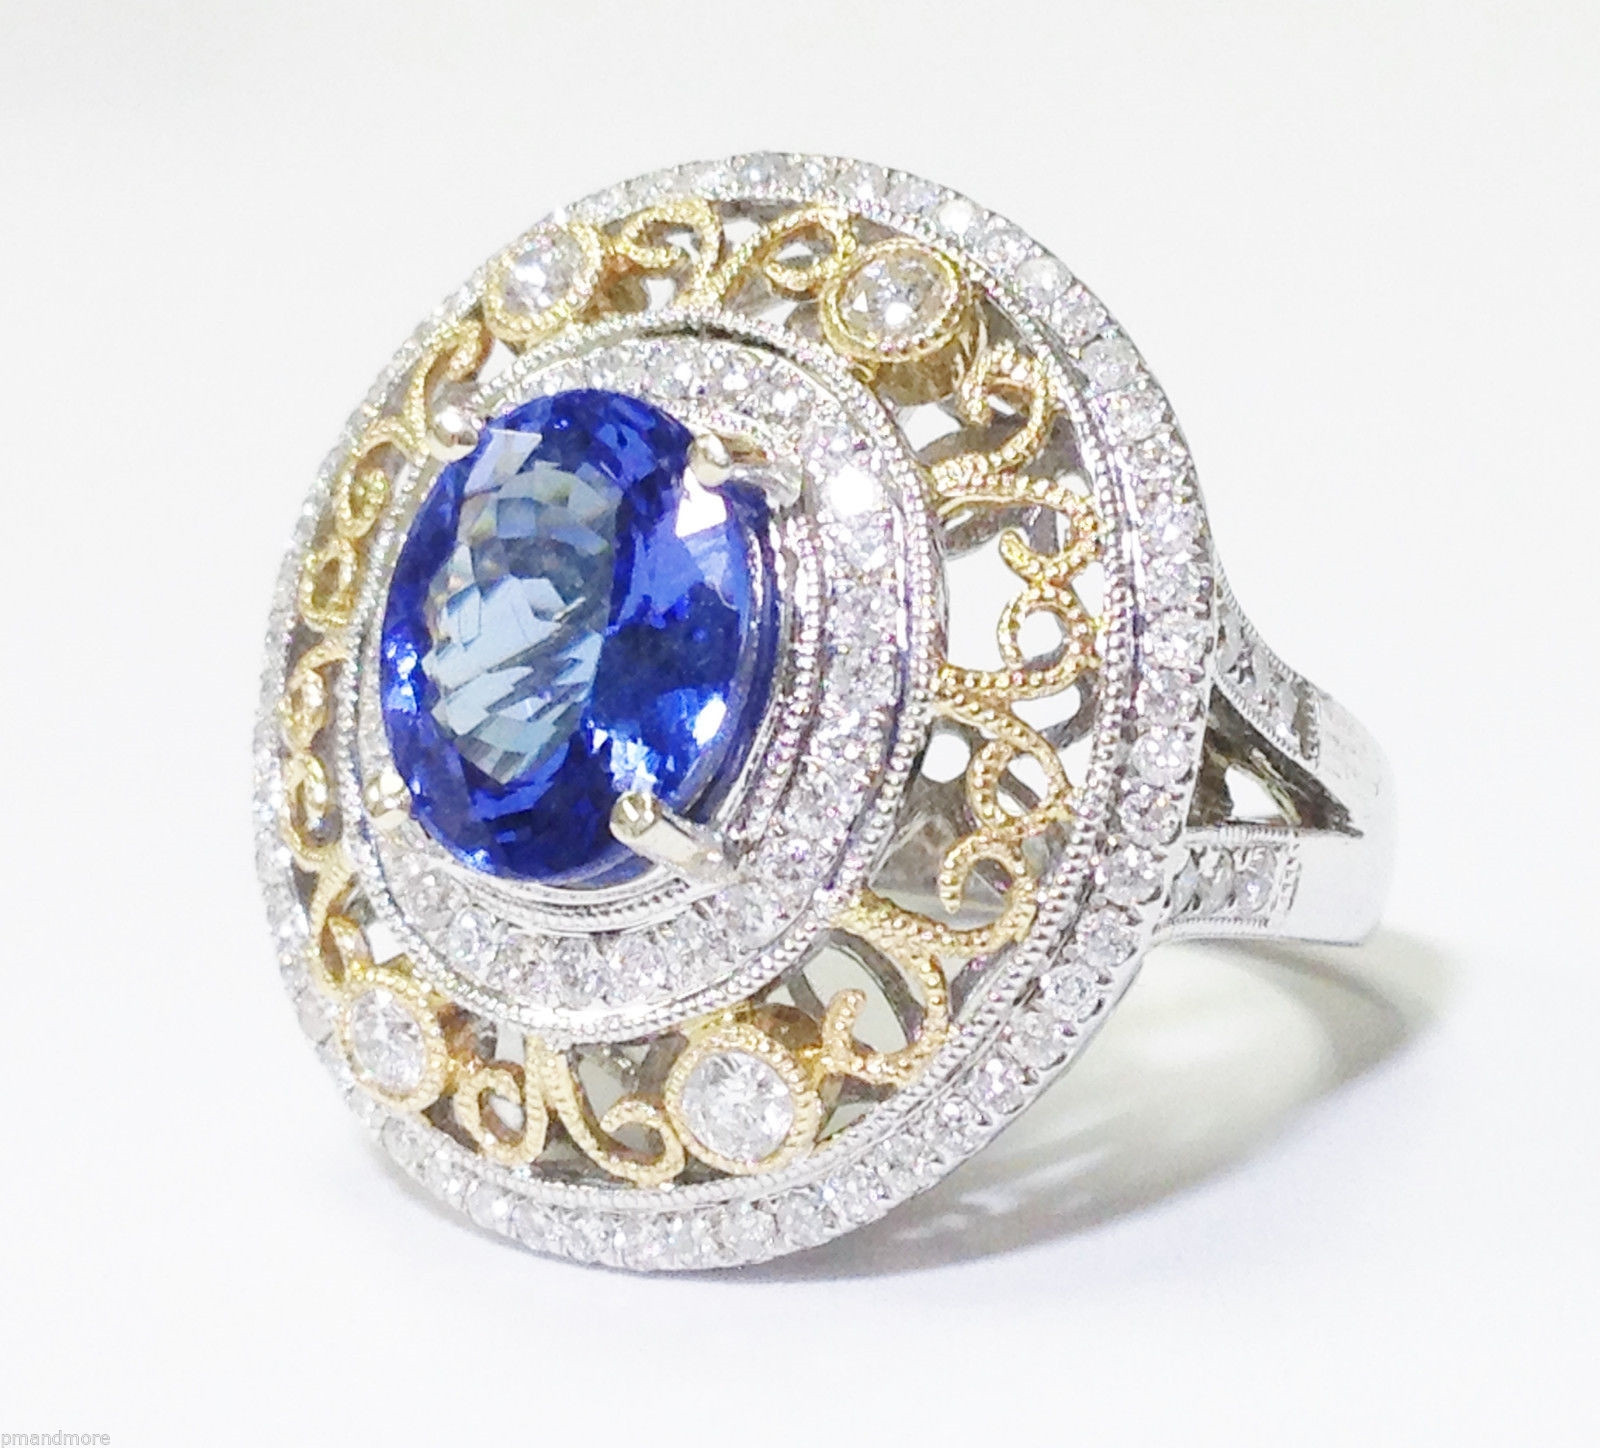 STUNNING 4.72 TCW VIOLET BLUE TANZANITE & DIAMOND 14K WHITE GOLD RING - $16,500!